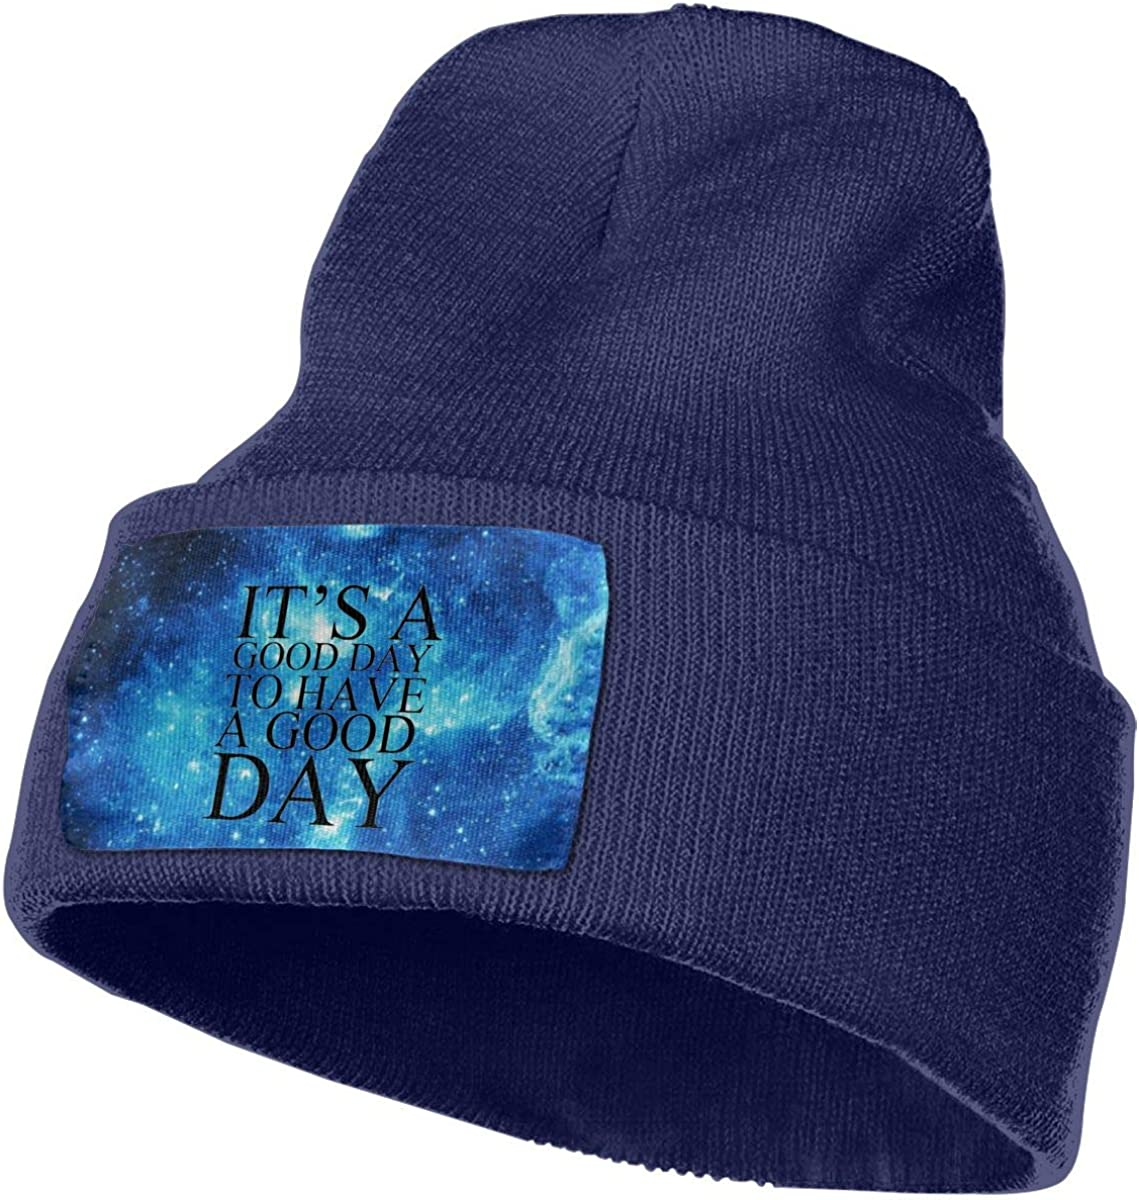 What A Great Day Winter Beanie Hat Knit Skull Cap for for Men /& Women